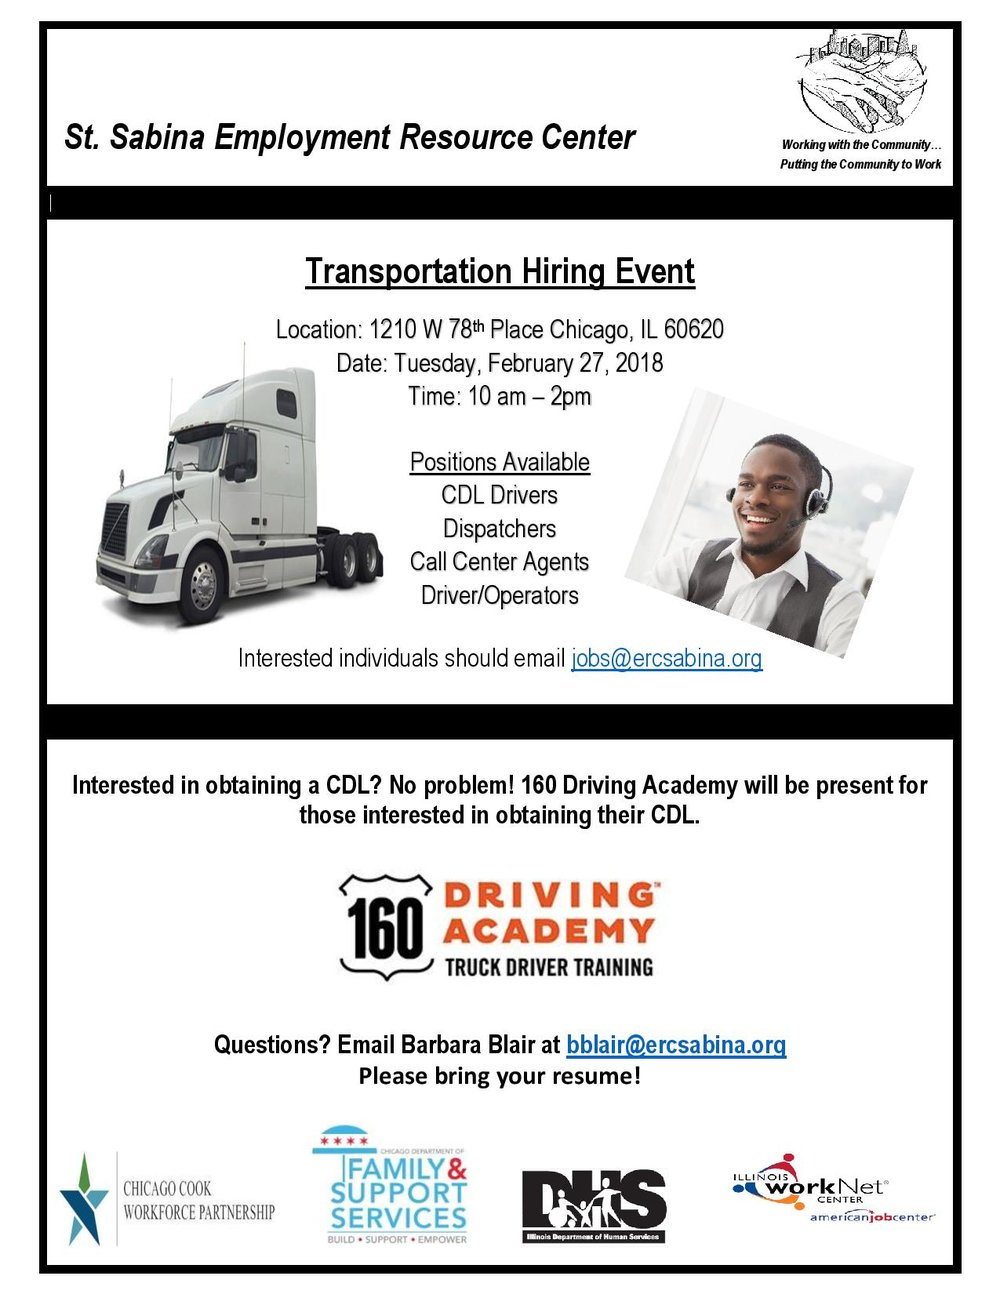 Transportation Hiring Event (1)-page-001.jpg